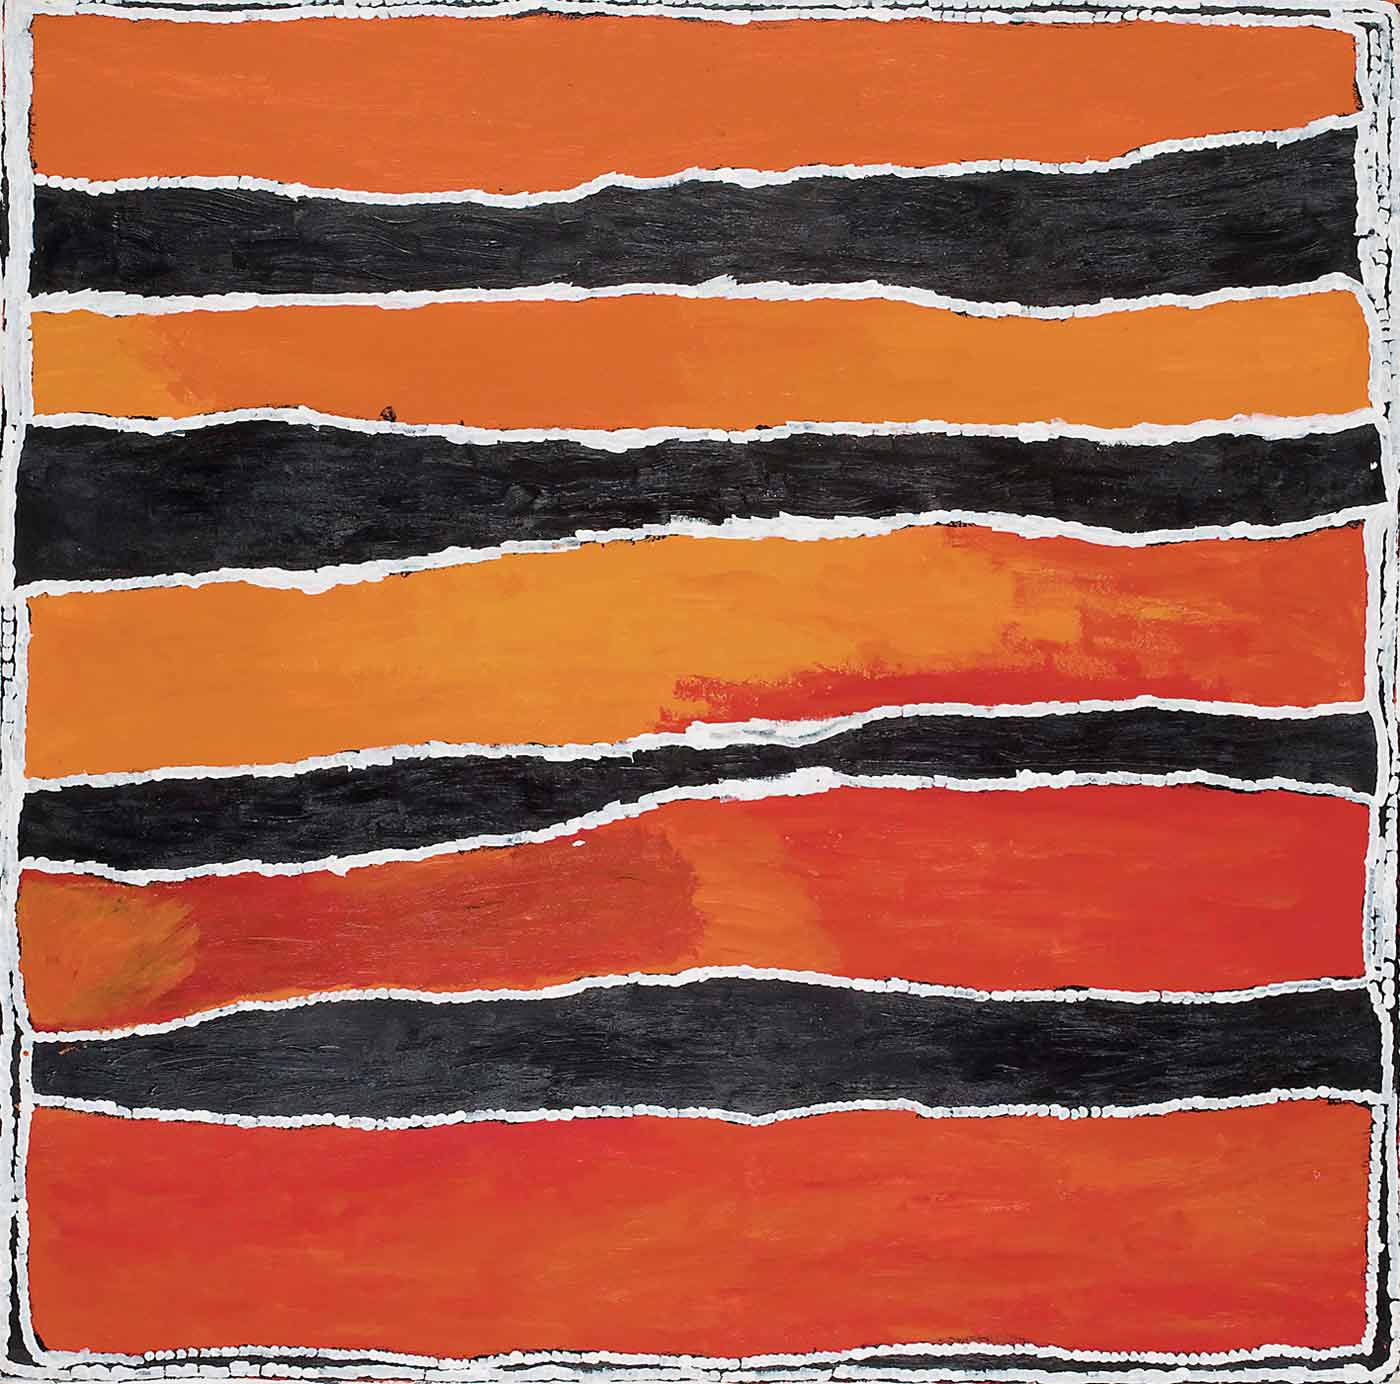 A square painting on canvas with horizontal uneven stripes in orange and black with thin white dividing lines. The orange stripes start as a medium tone at the top, and then yellow-orange in the central section and red-orange in the bottom part of the painting.  - click to view larger image